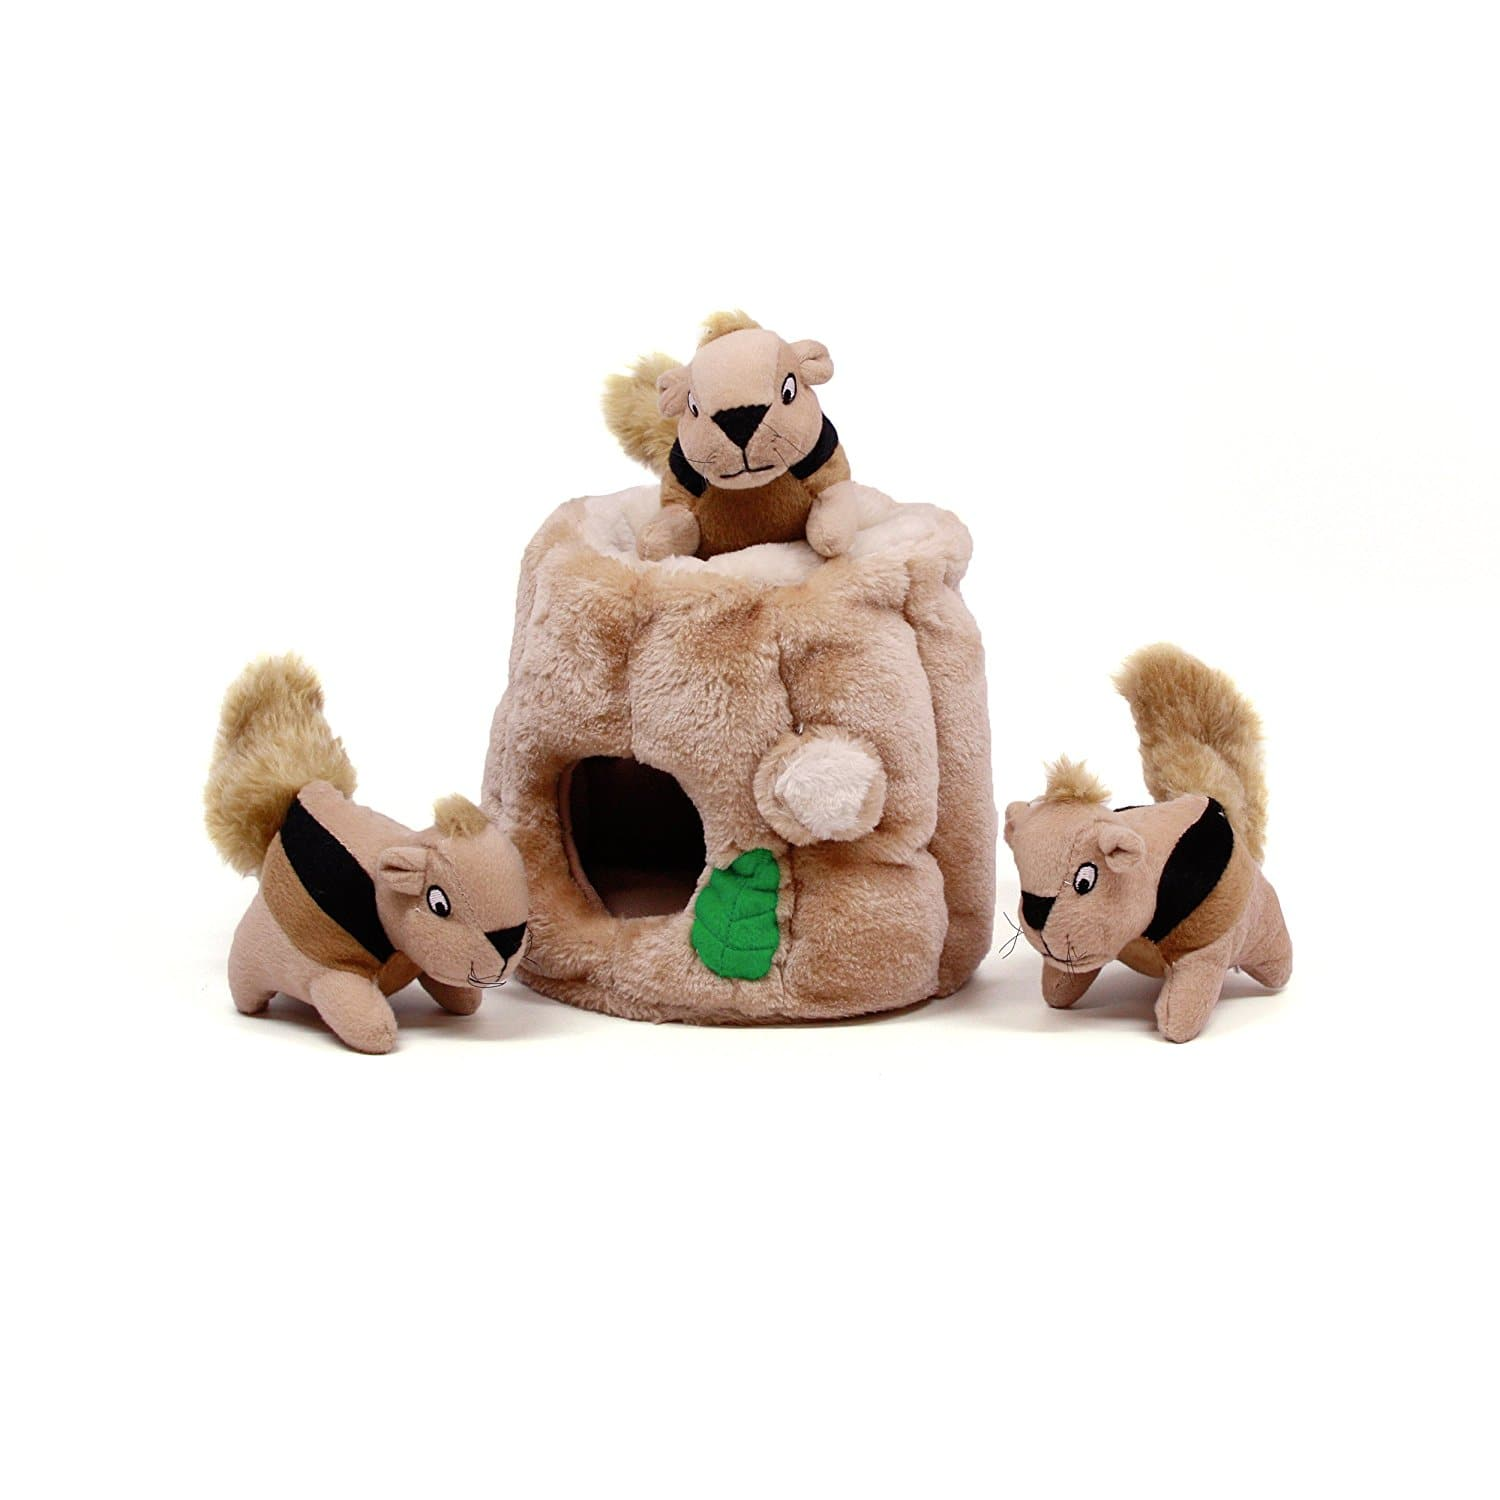 Prime w/ Alexa Large 4-Piece Outward Hound Hide-A-Squirrel with Puzzle Plush Squeaking Dog Toys - $6.99